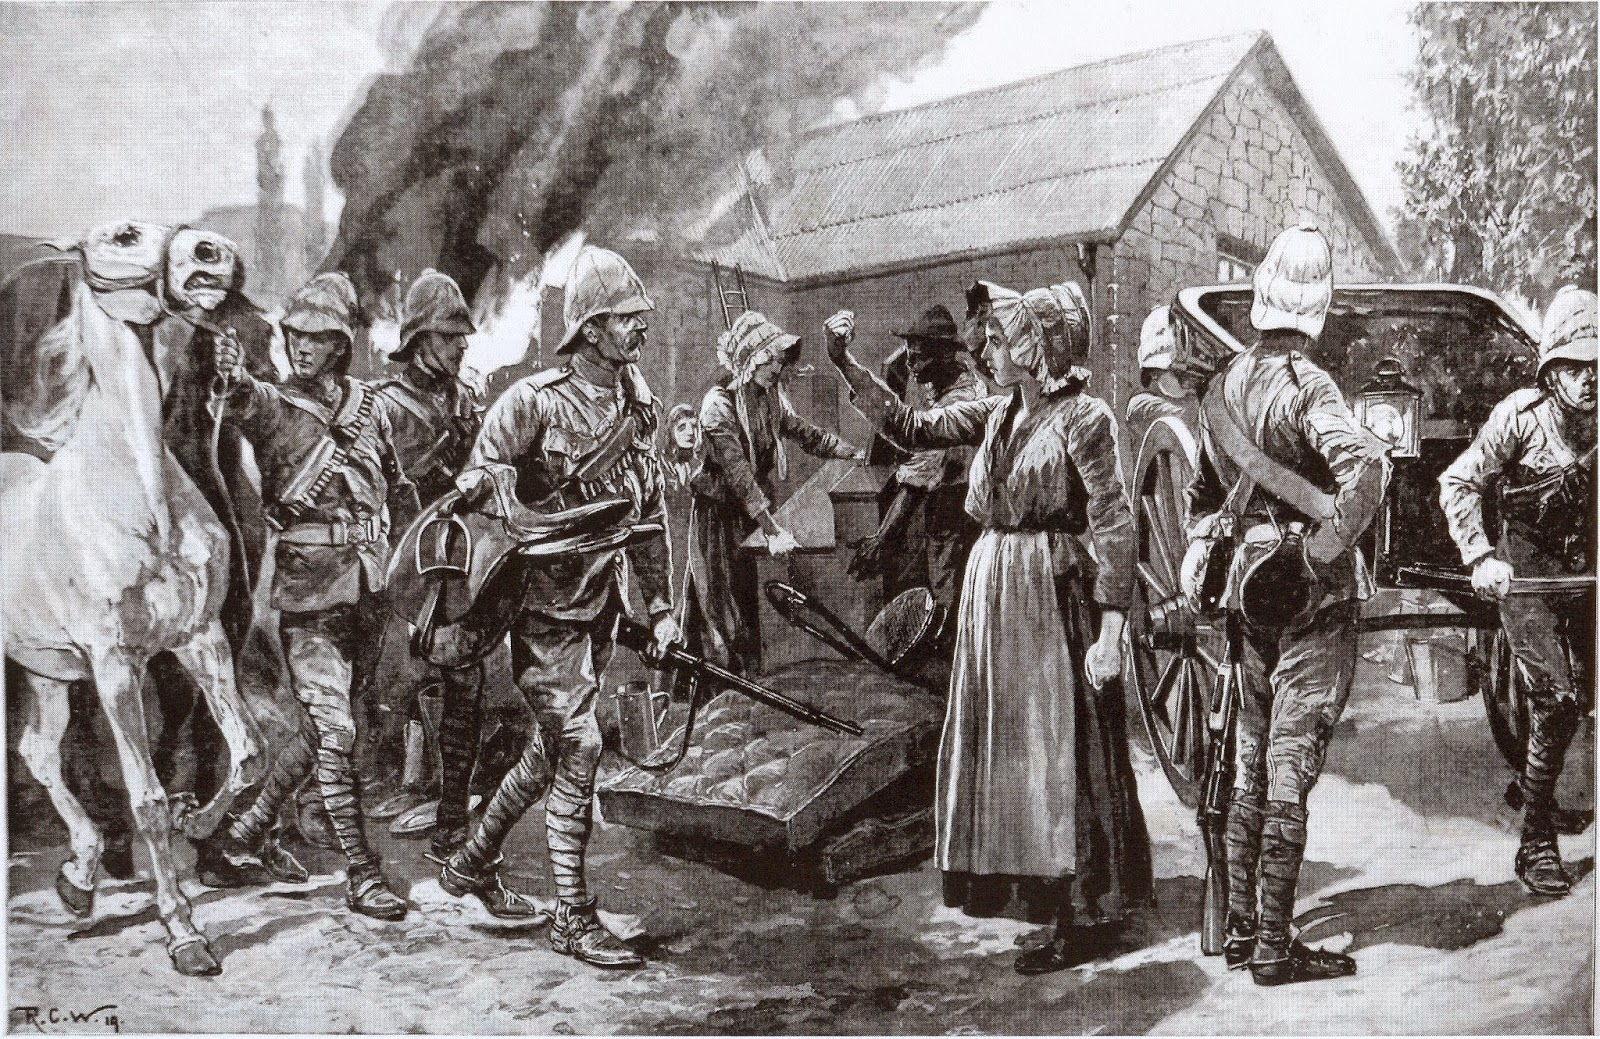 New York Life Day By Day The South African Boer War 1899 1902